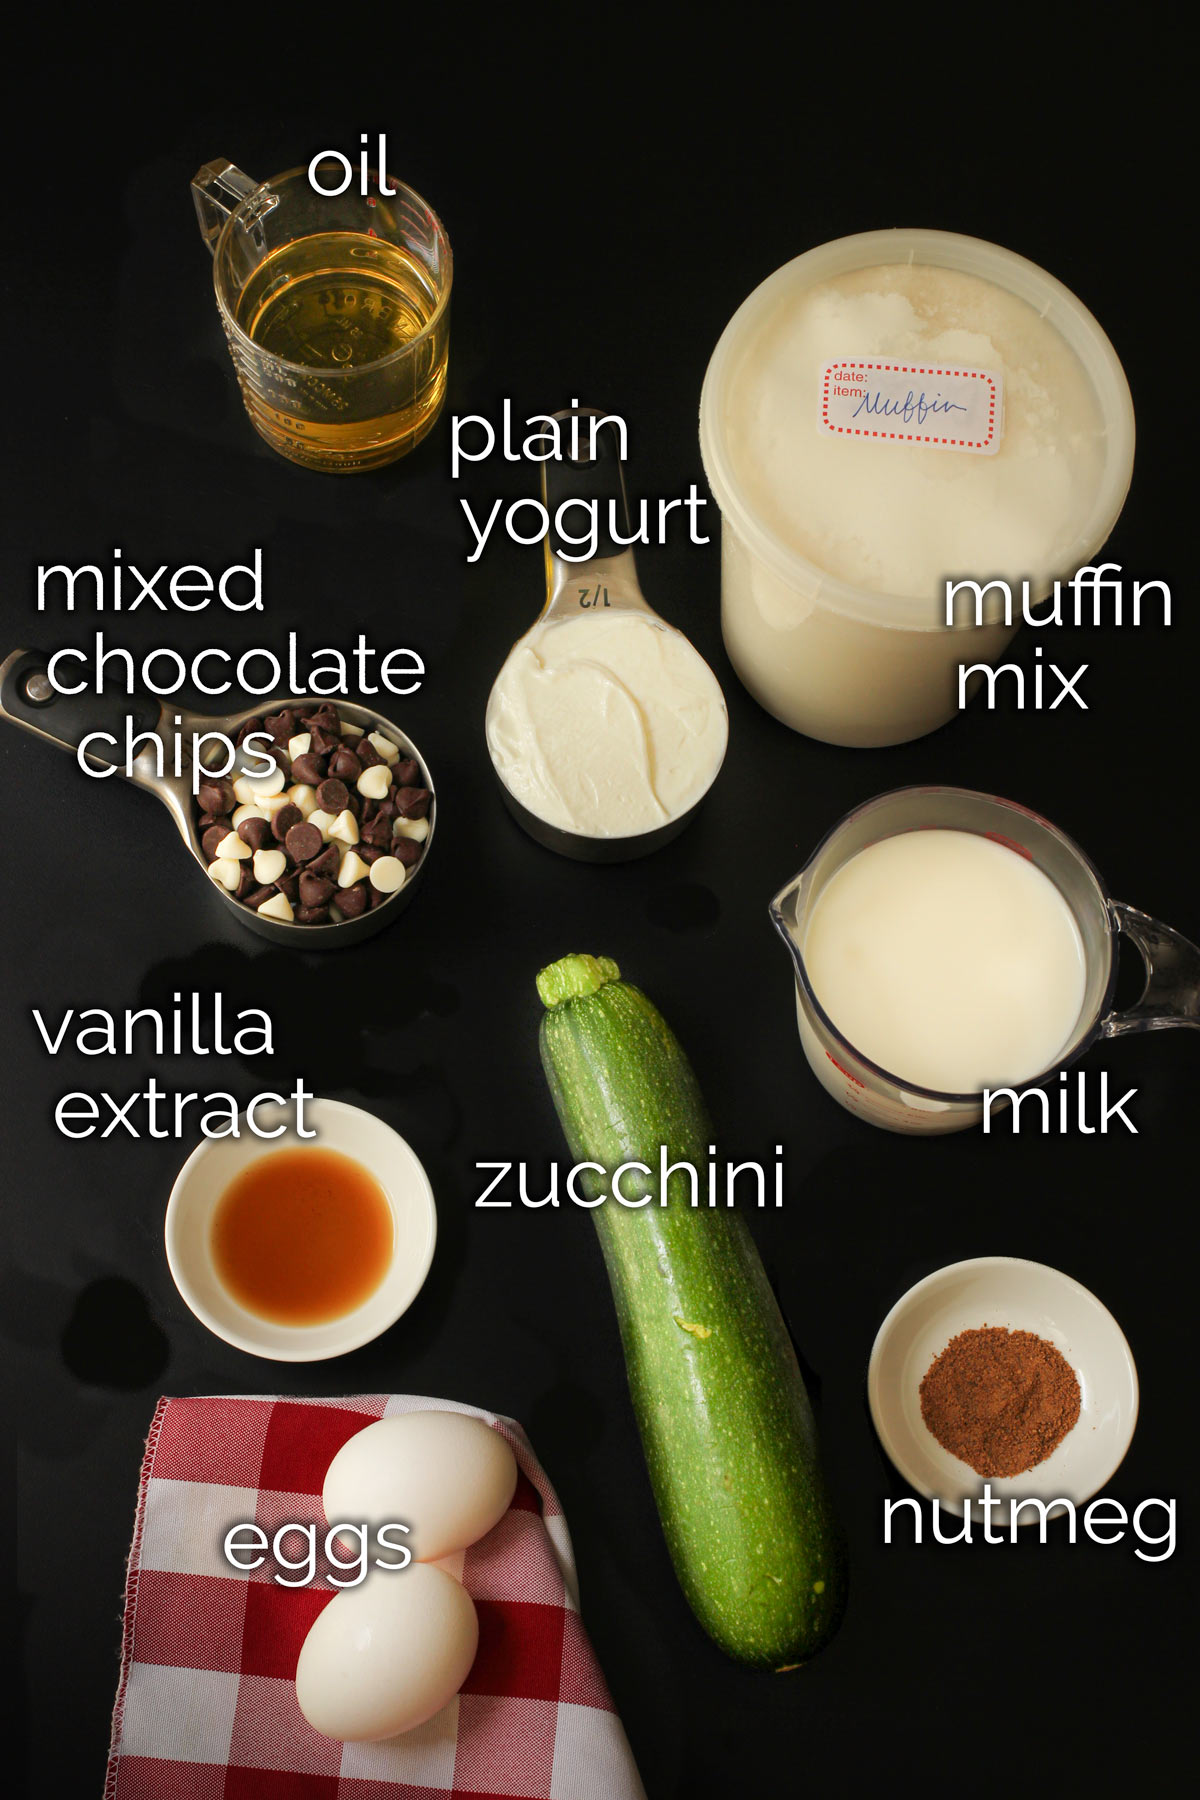 ingredients for chocolate chip zucchini muffins laid out on a black tabletop.